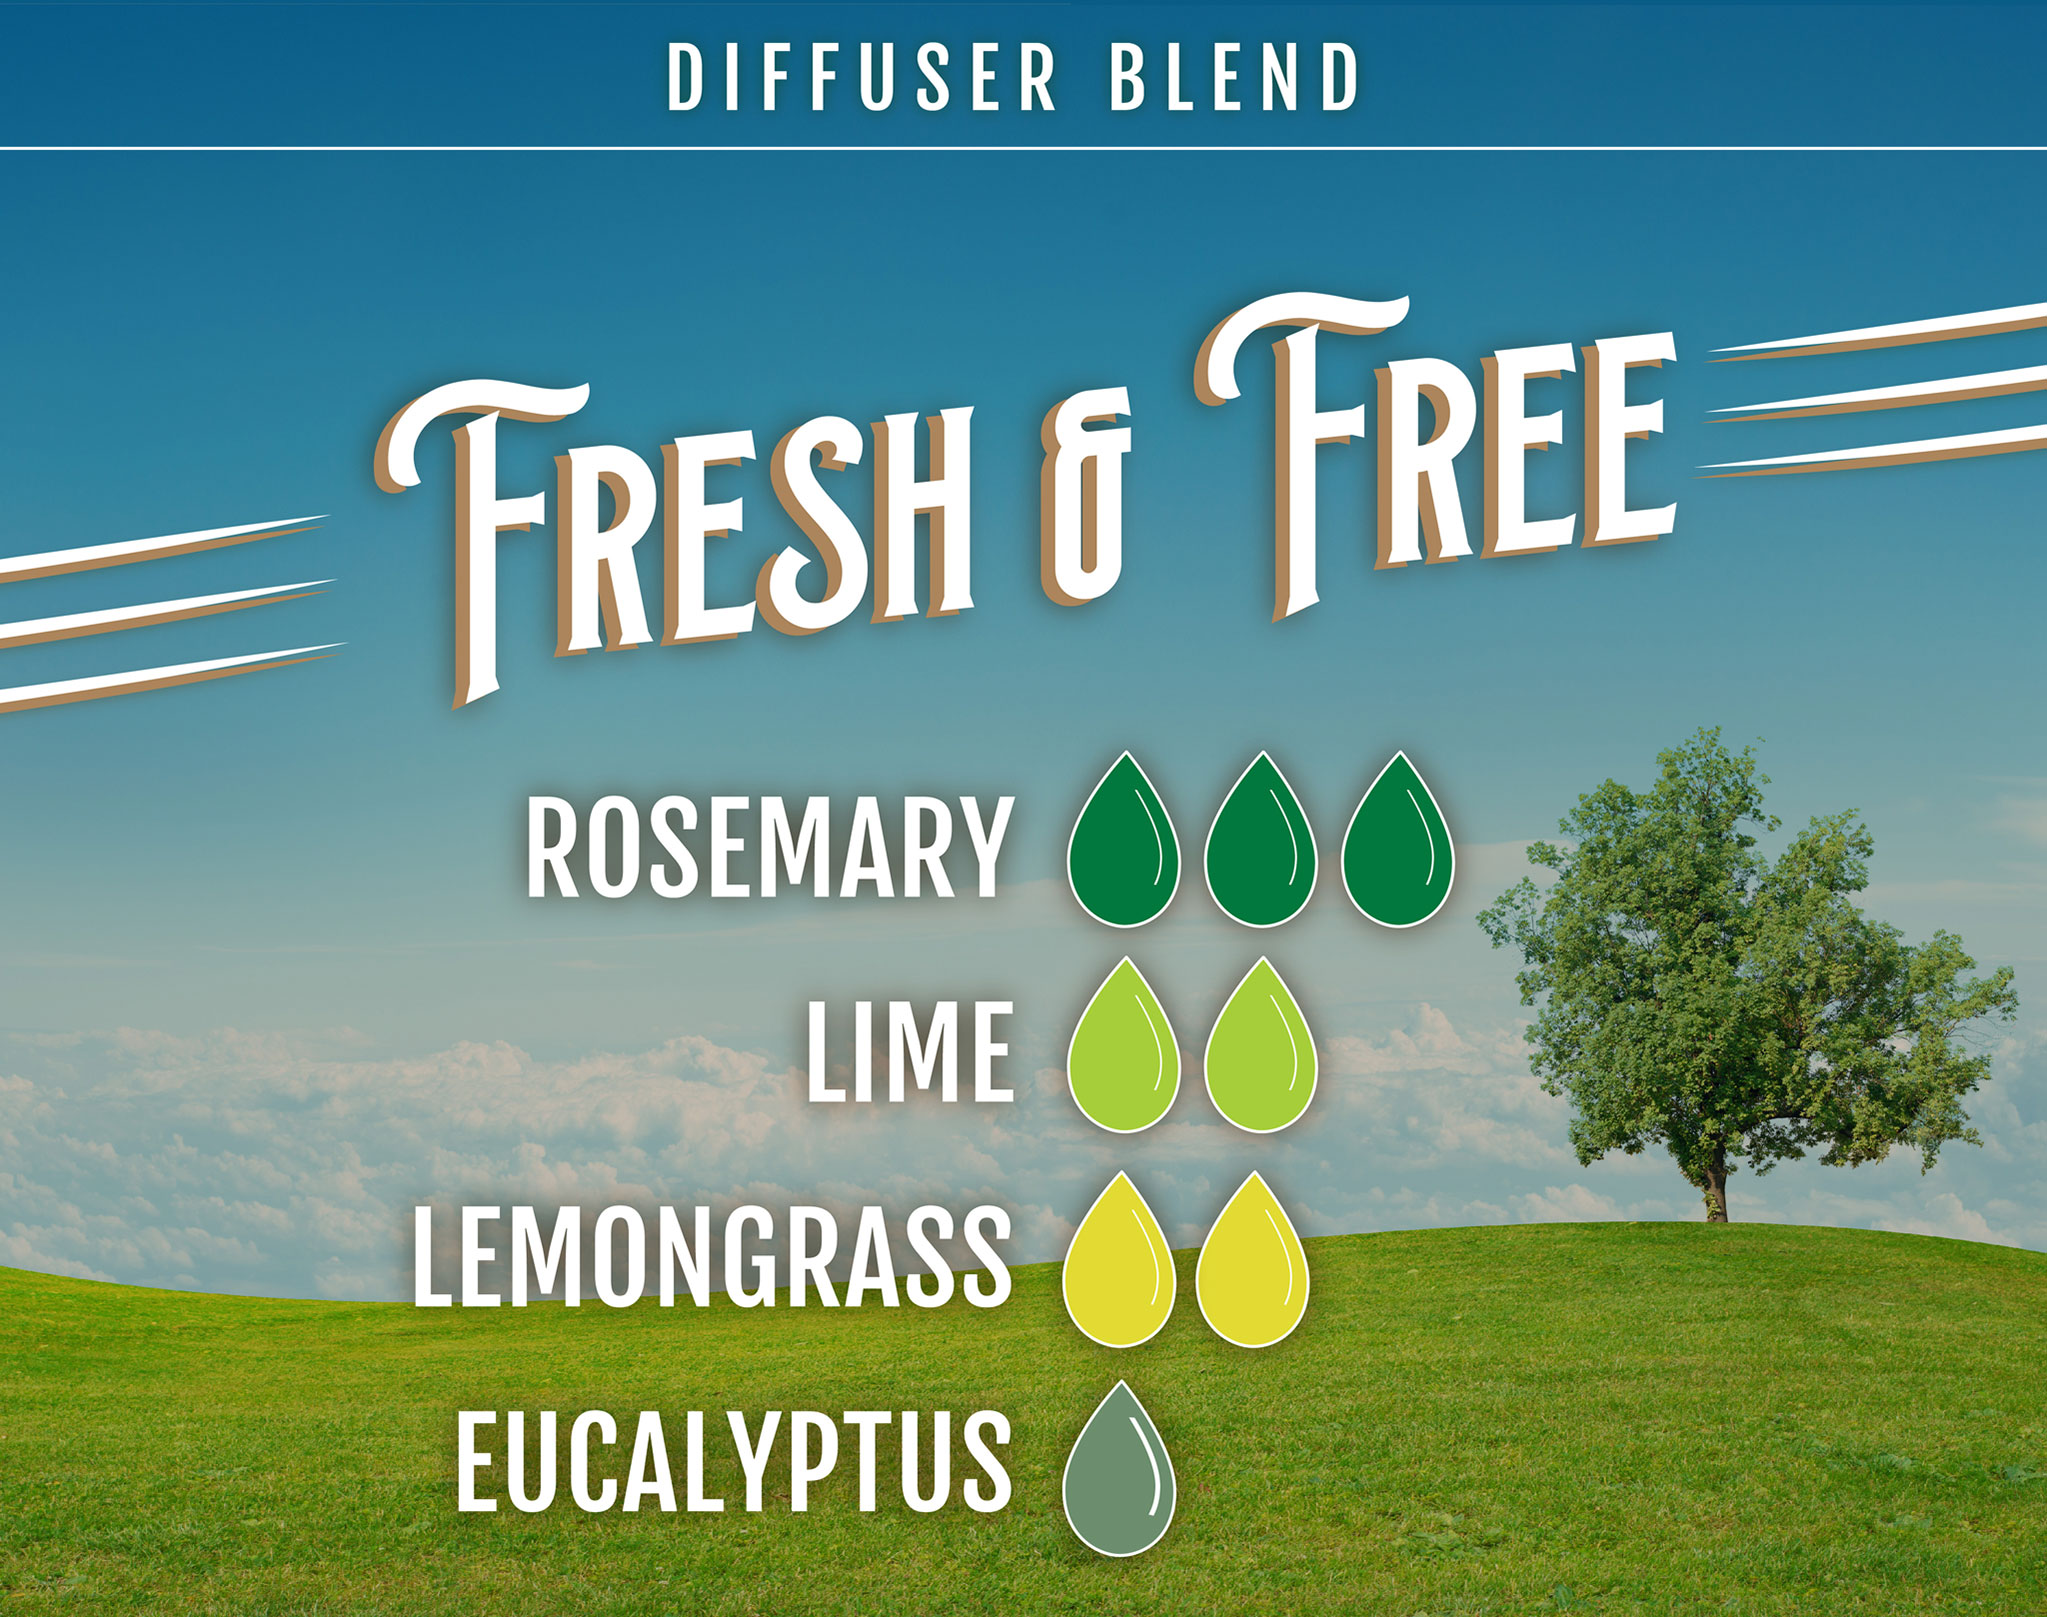 Fresh and Free Rosemary Essential Oil Diffuser Blend - 3 drops of rosemary, 2 drops of lime, 2 drops of lemongrass, 1 drop of eucalyptus